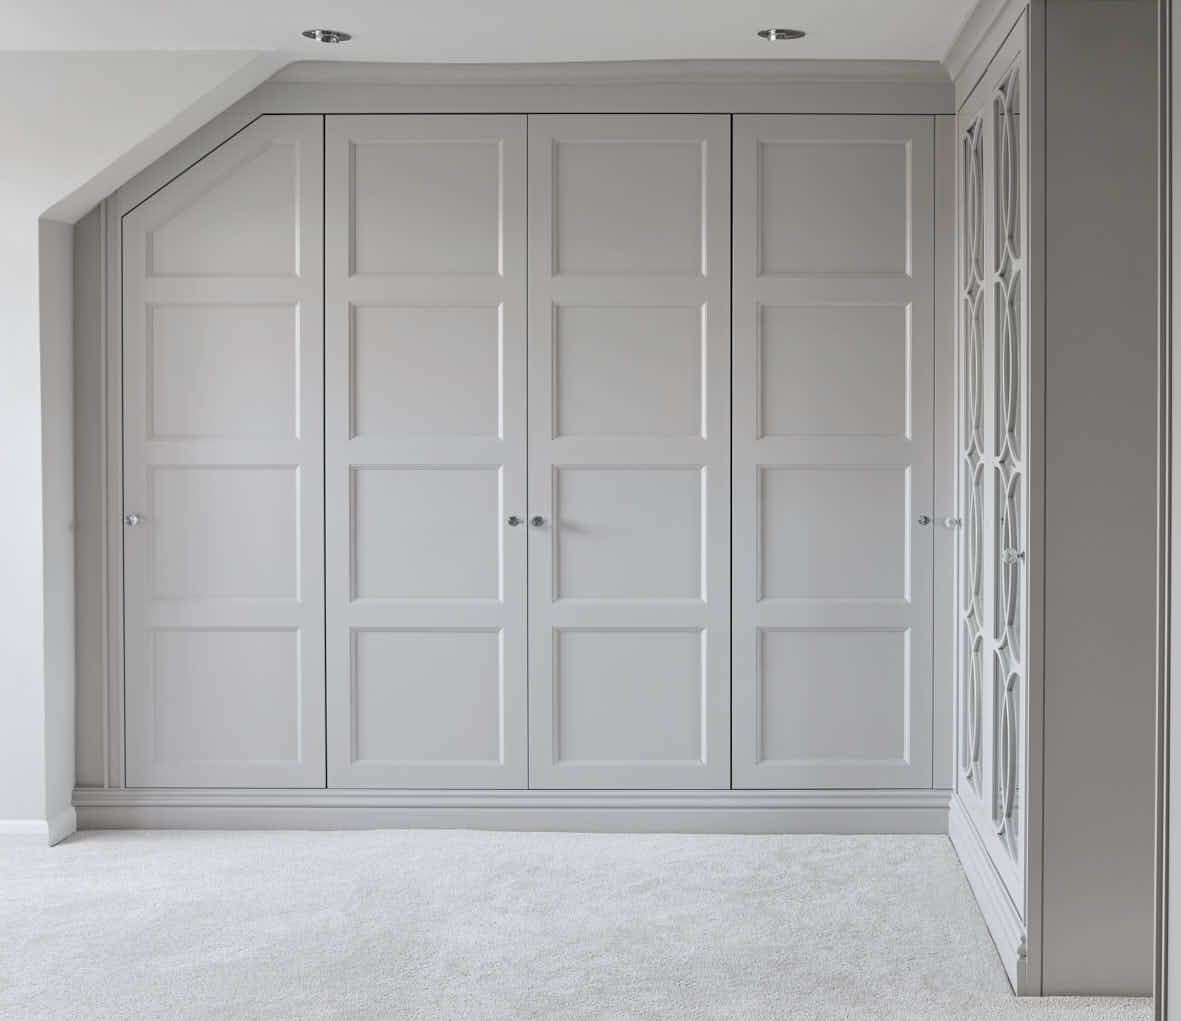 Bespoke Dressing Rooms | Fitted Dressing Room Designs